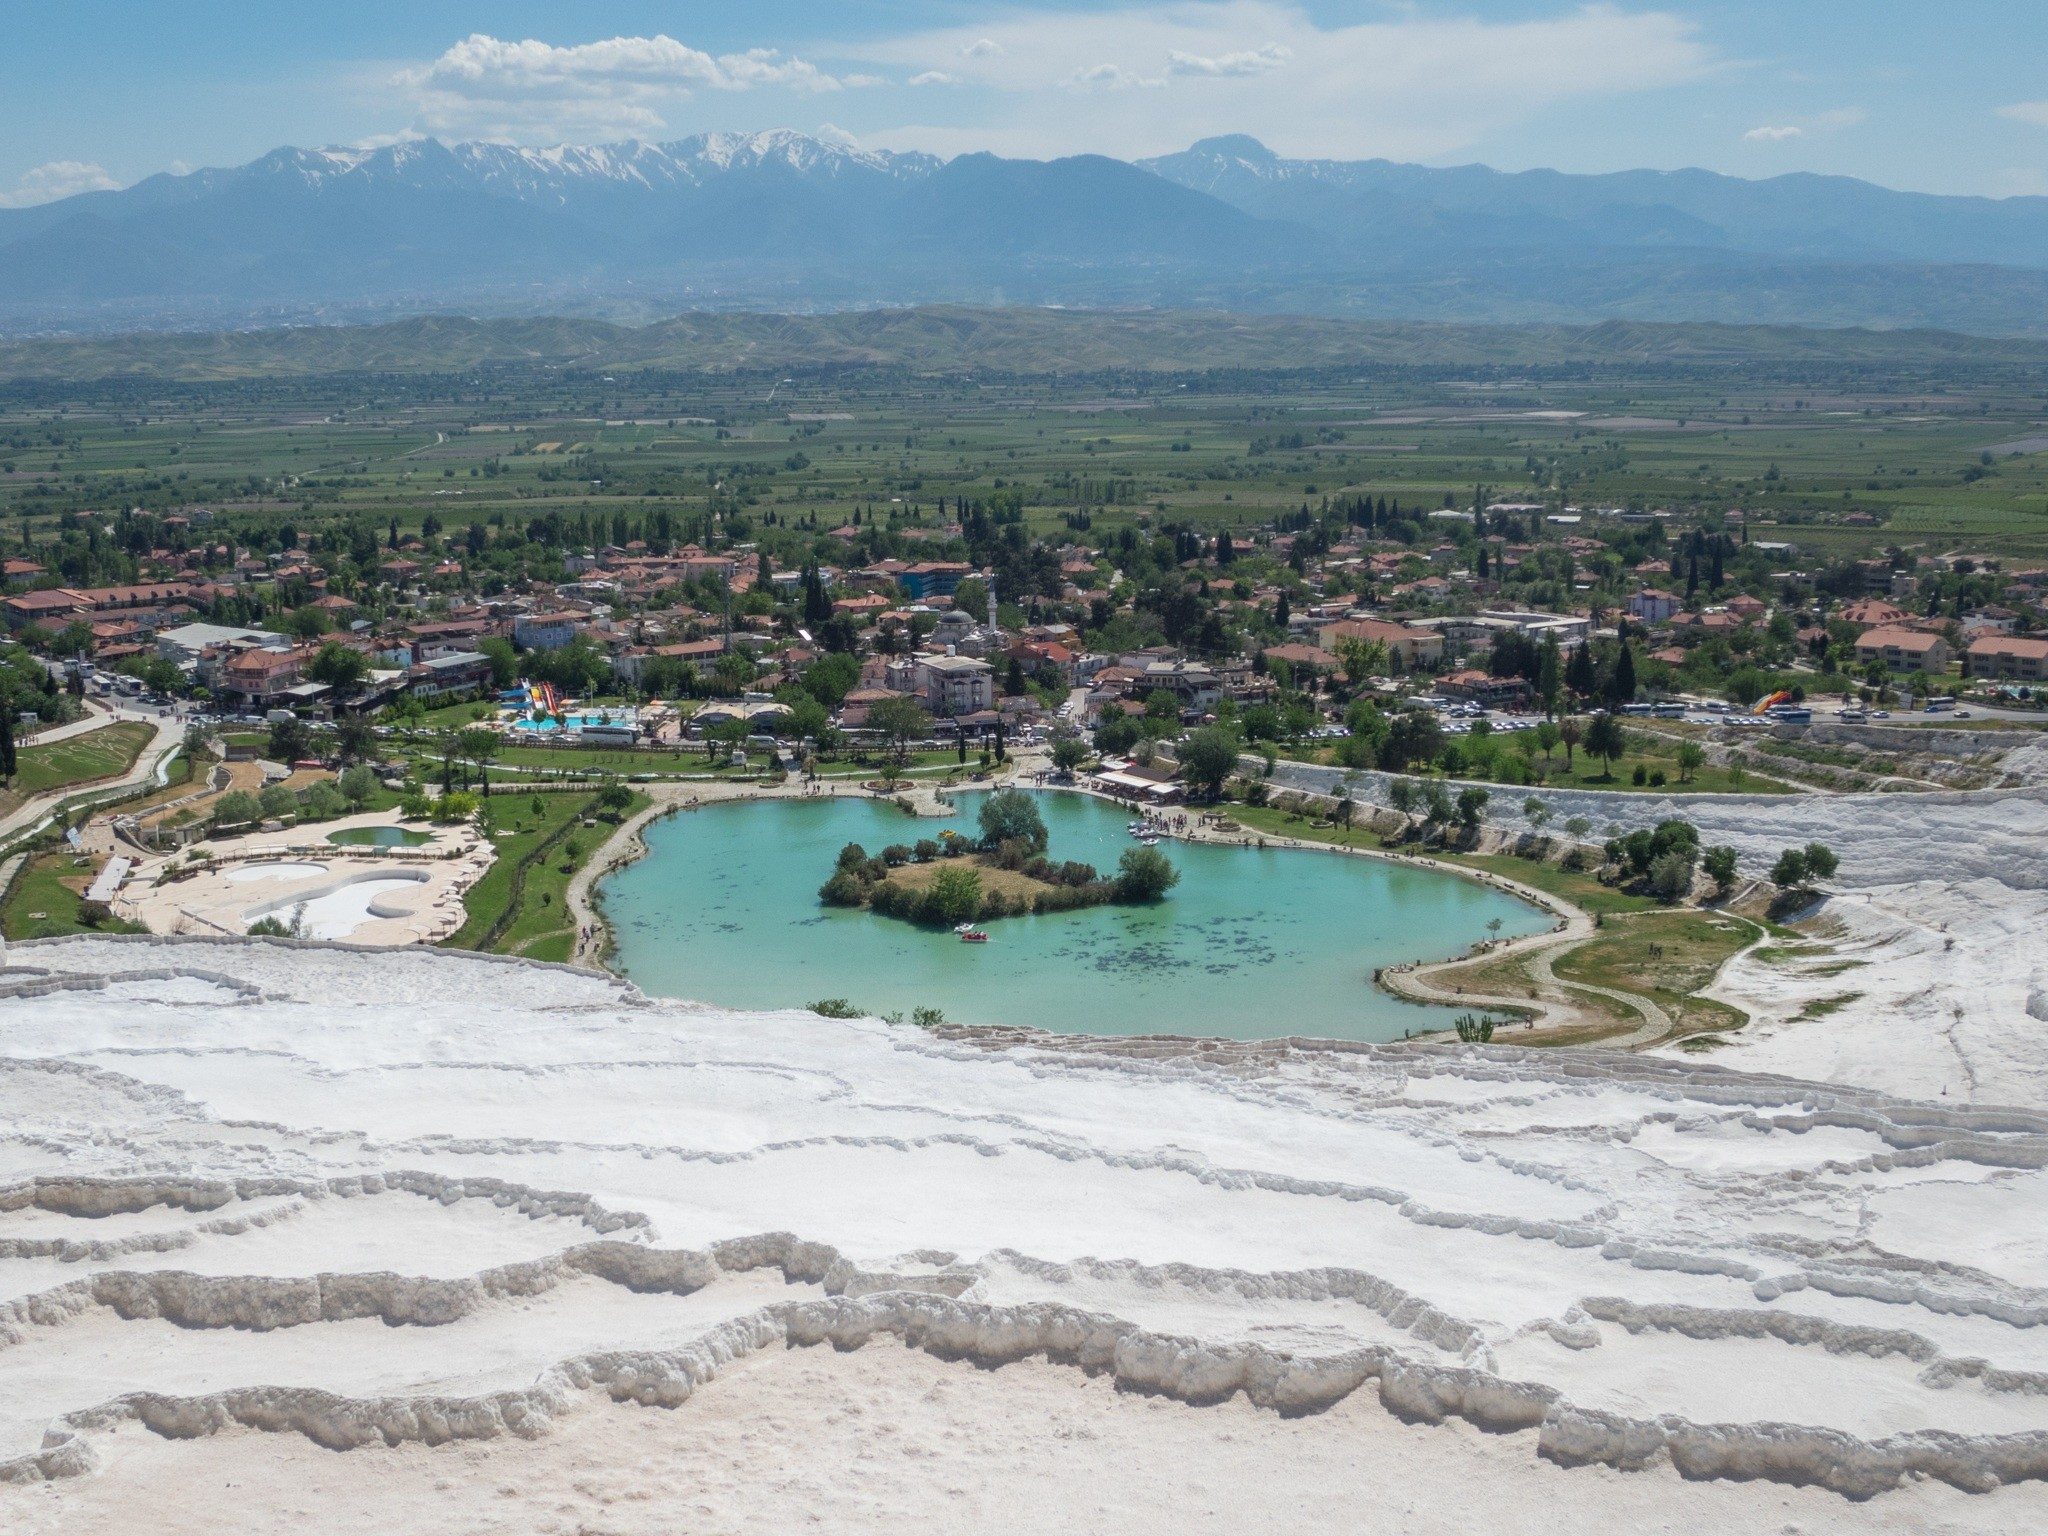 View from the top of Pamukkale cotton castle in Turkey.